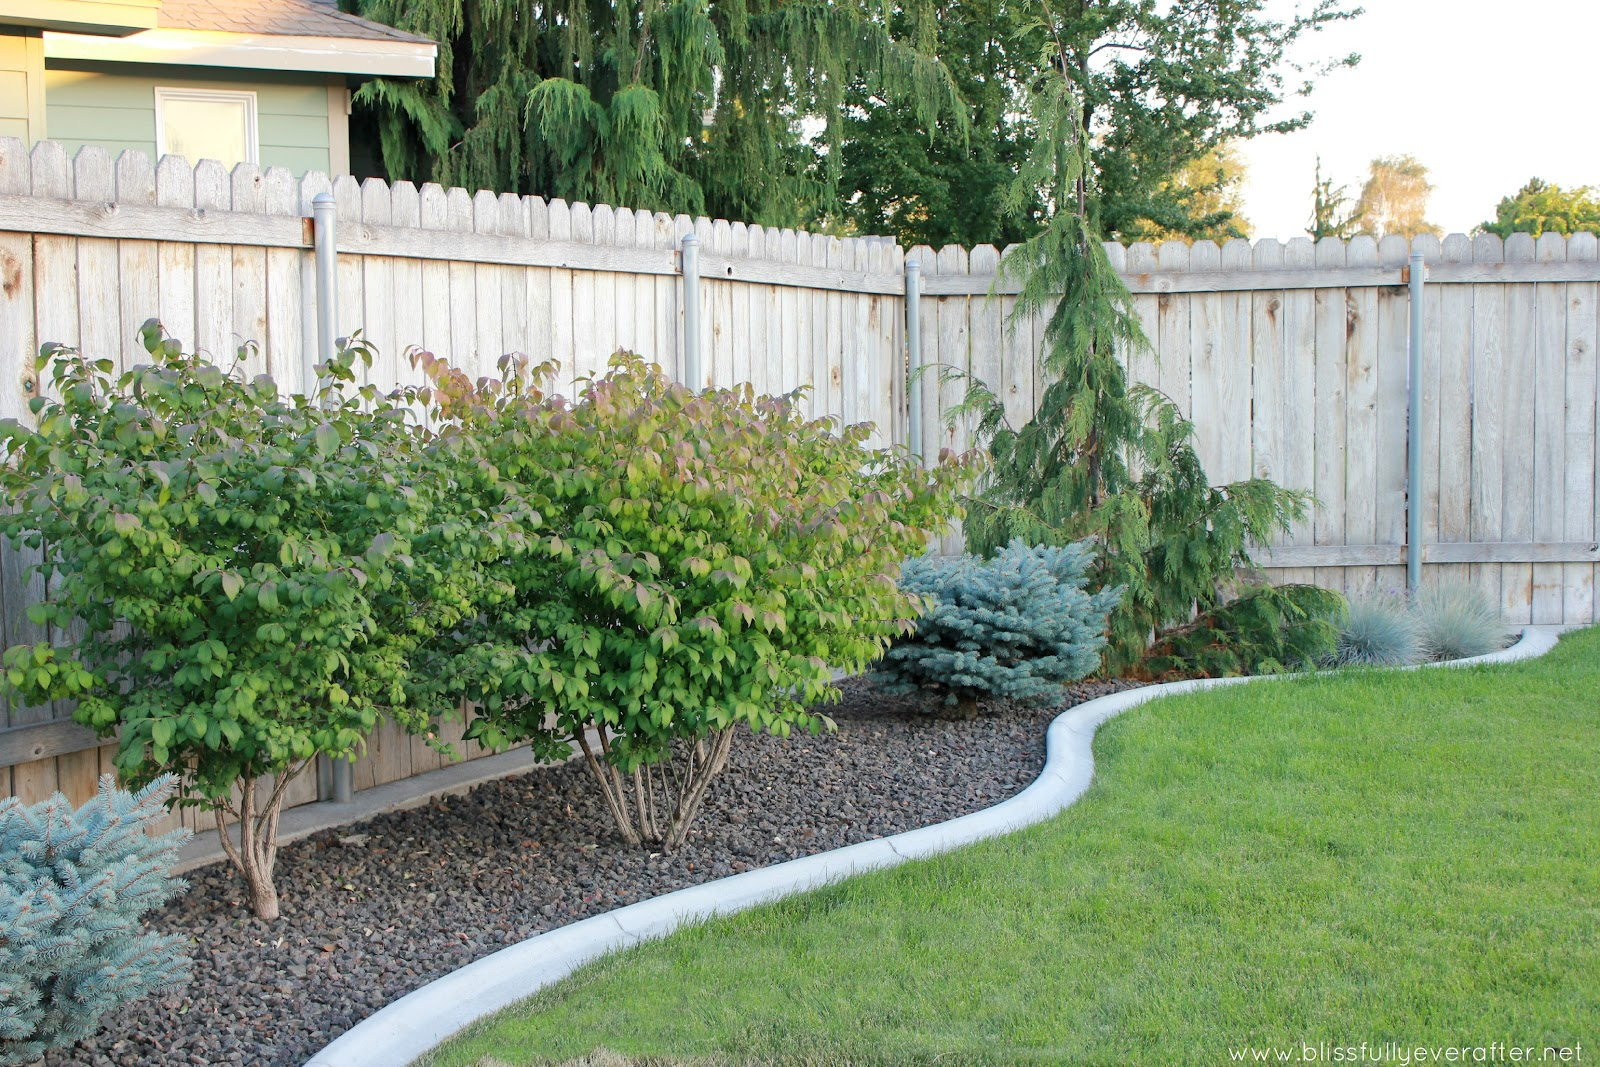 Yes landscaping Custom: Front yard landscaping ideas for ... on Affordable Backyard Ideas id=26752